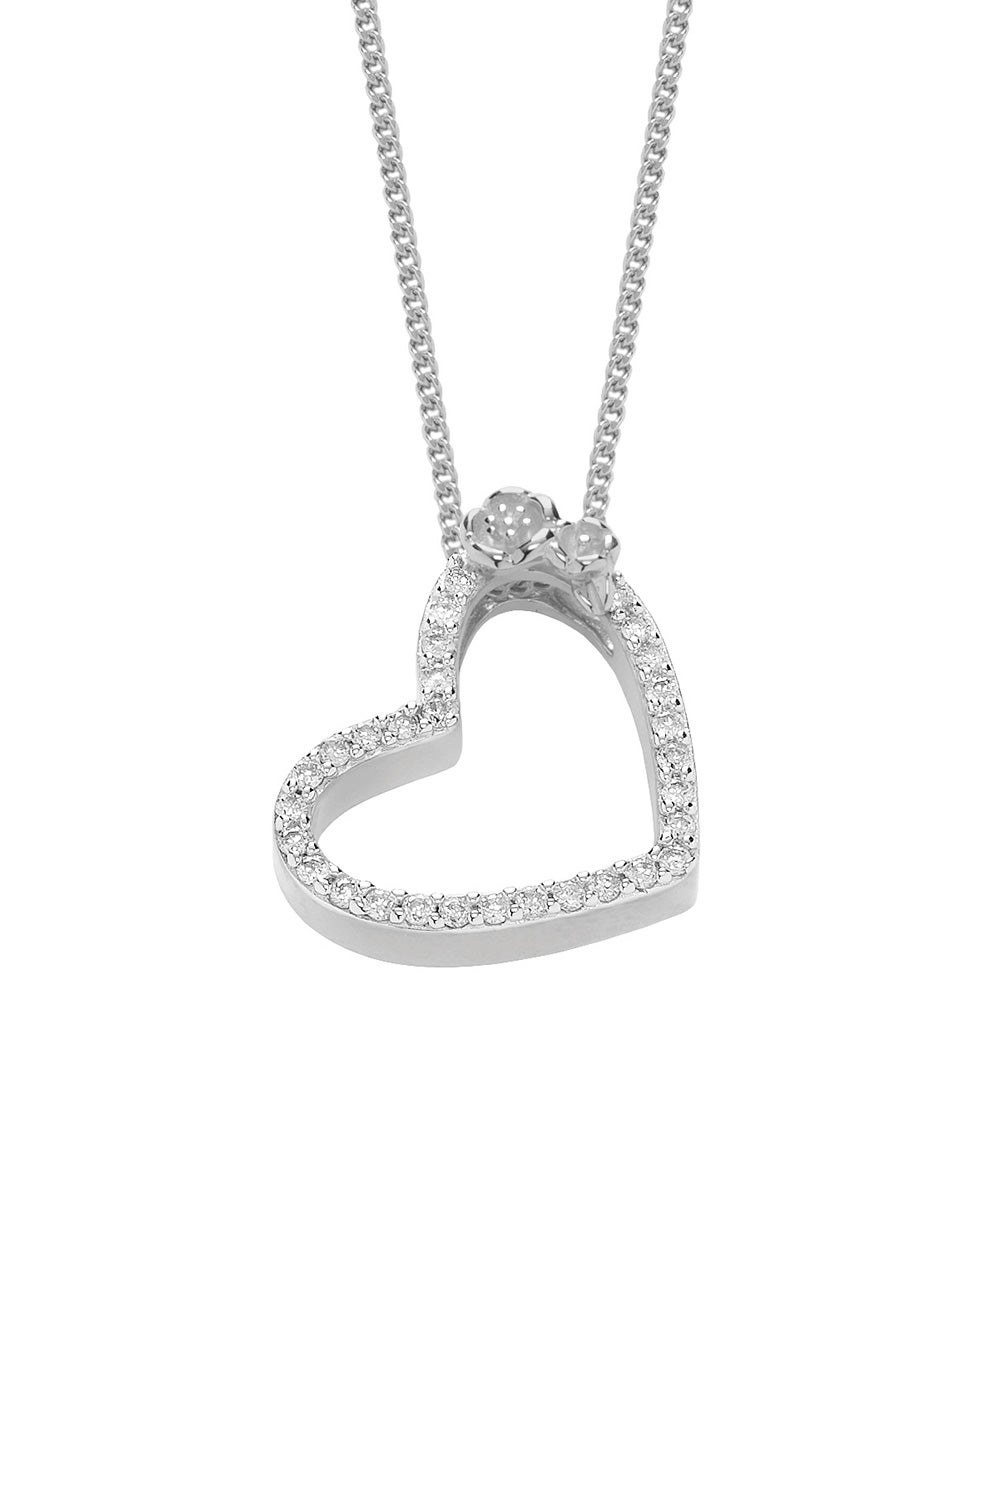 Diamond Botanical Heart Necklace, White Gold, .25ct Diamond